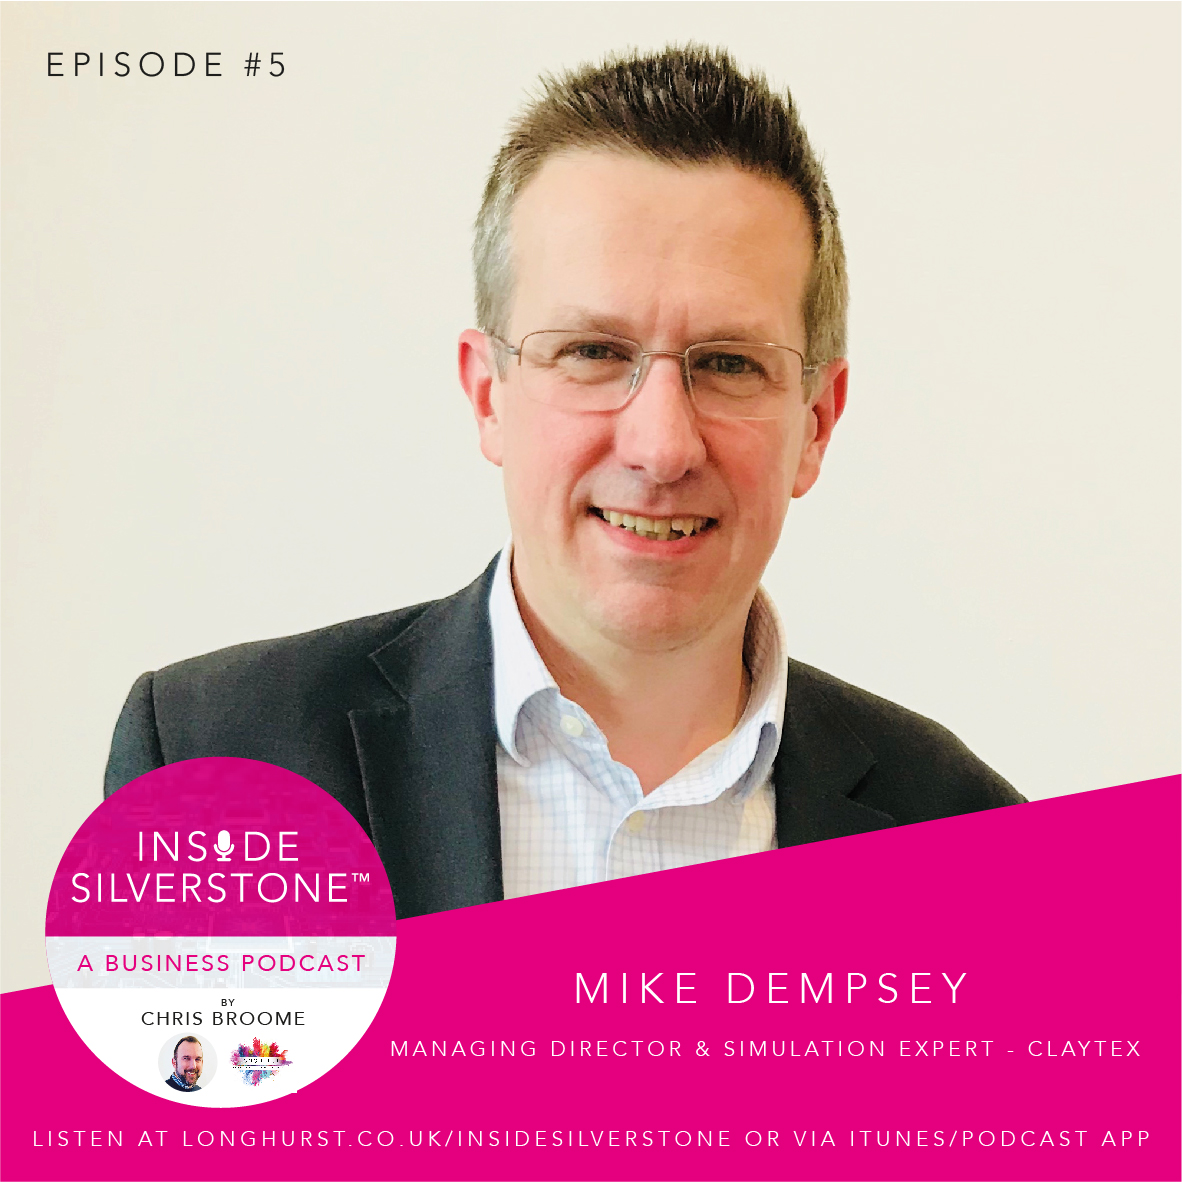 Mike Dempsey, MD & Simulation Expert, at Claytex